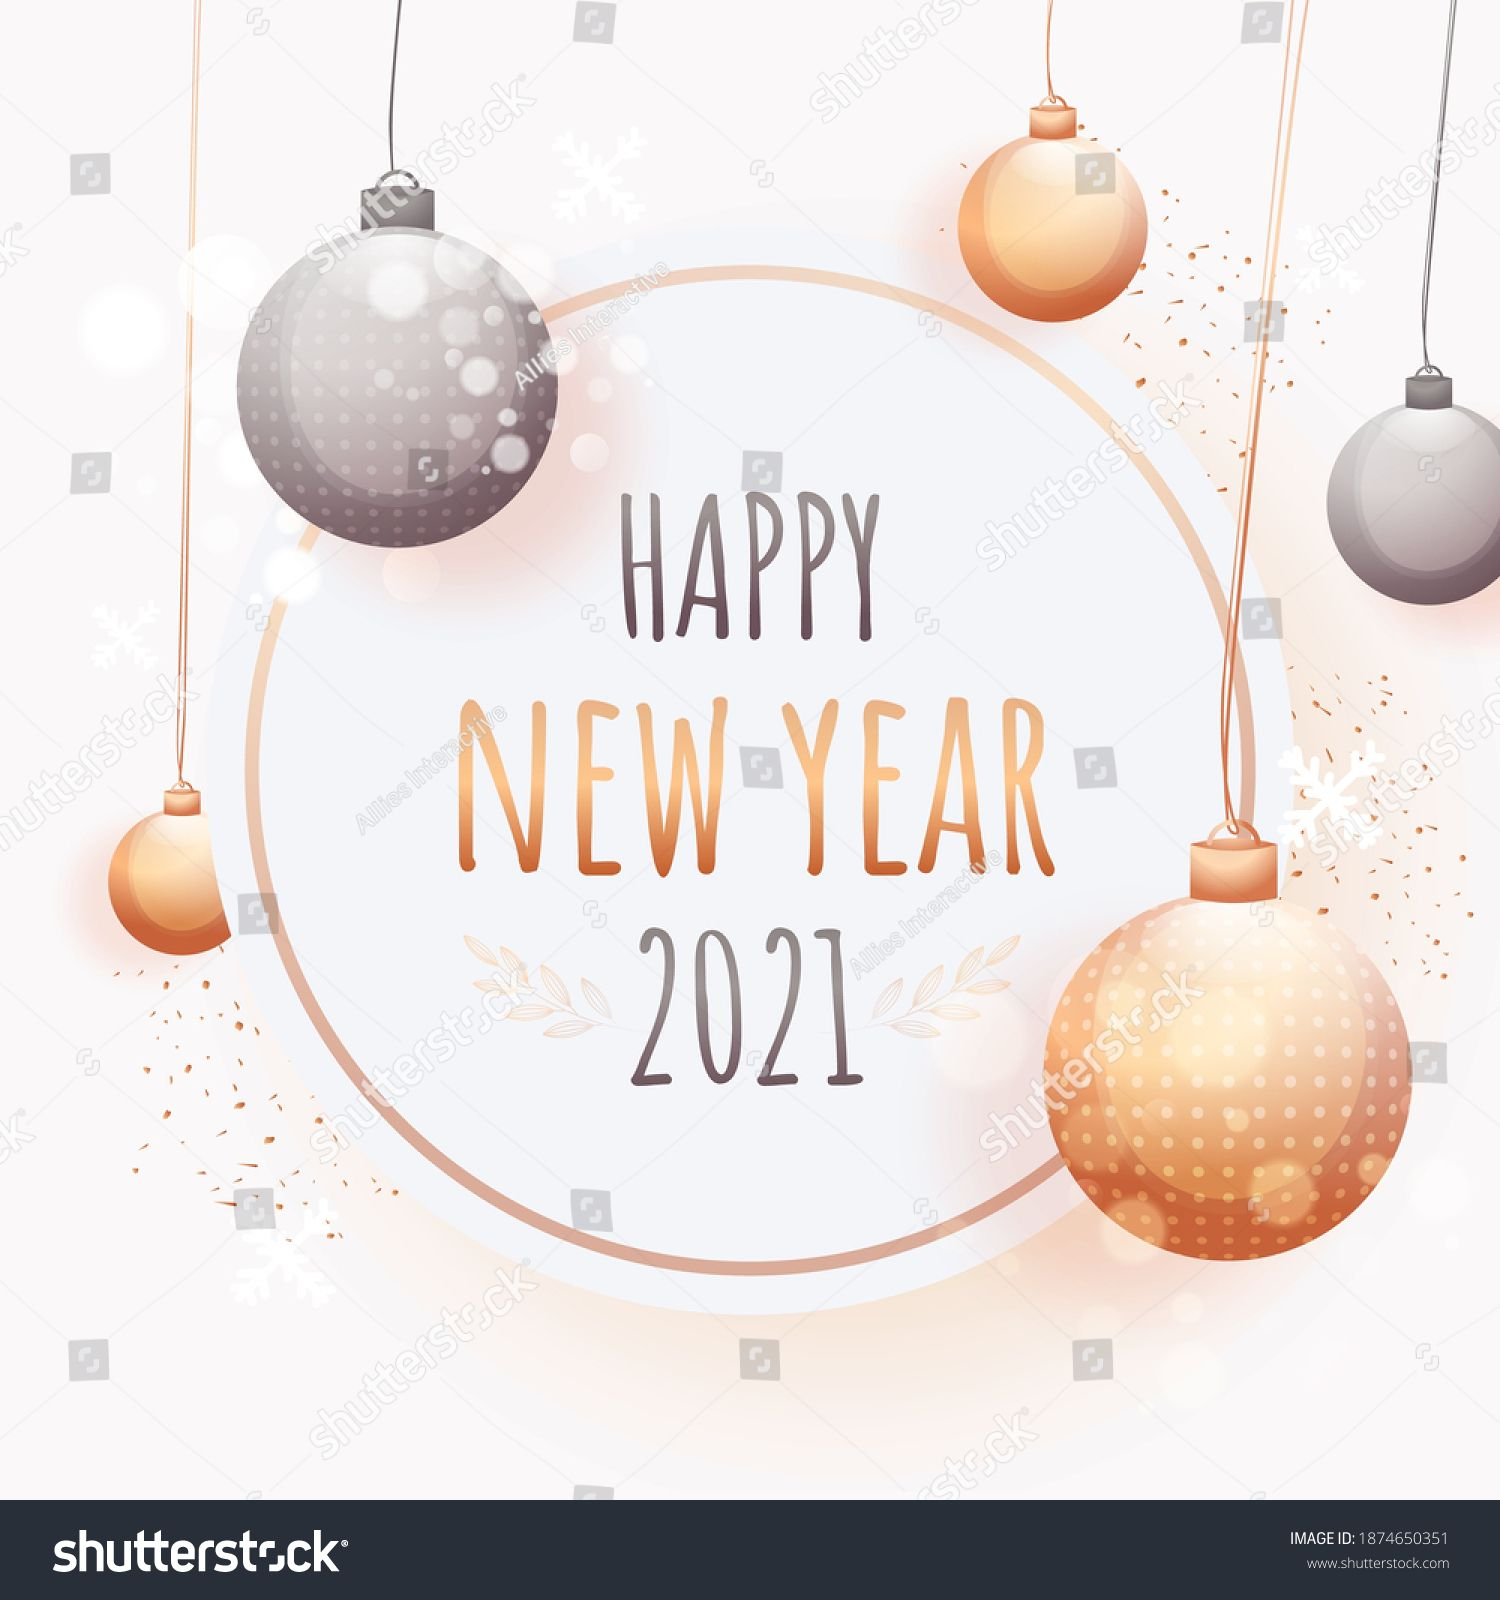 2021 Happy New Year Text On White Background Decorated With Hanging Baubles And Bokeh Effect In 2021 Happy New Year Text New Year Text Happy New Year 2021 happy new year christmas ball